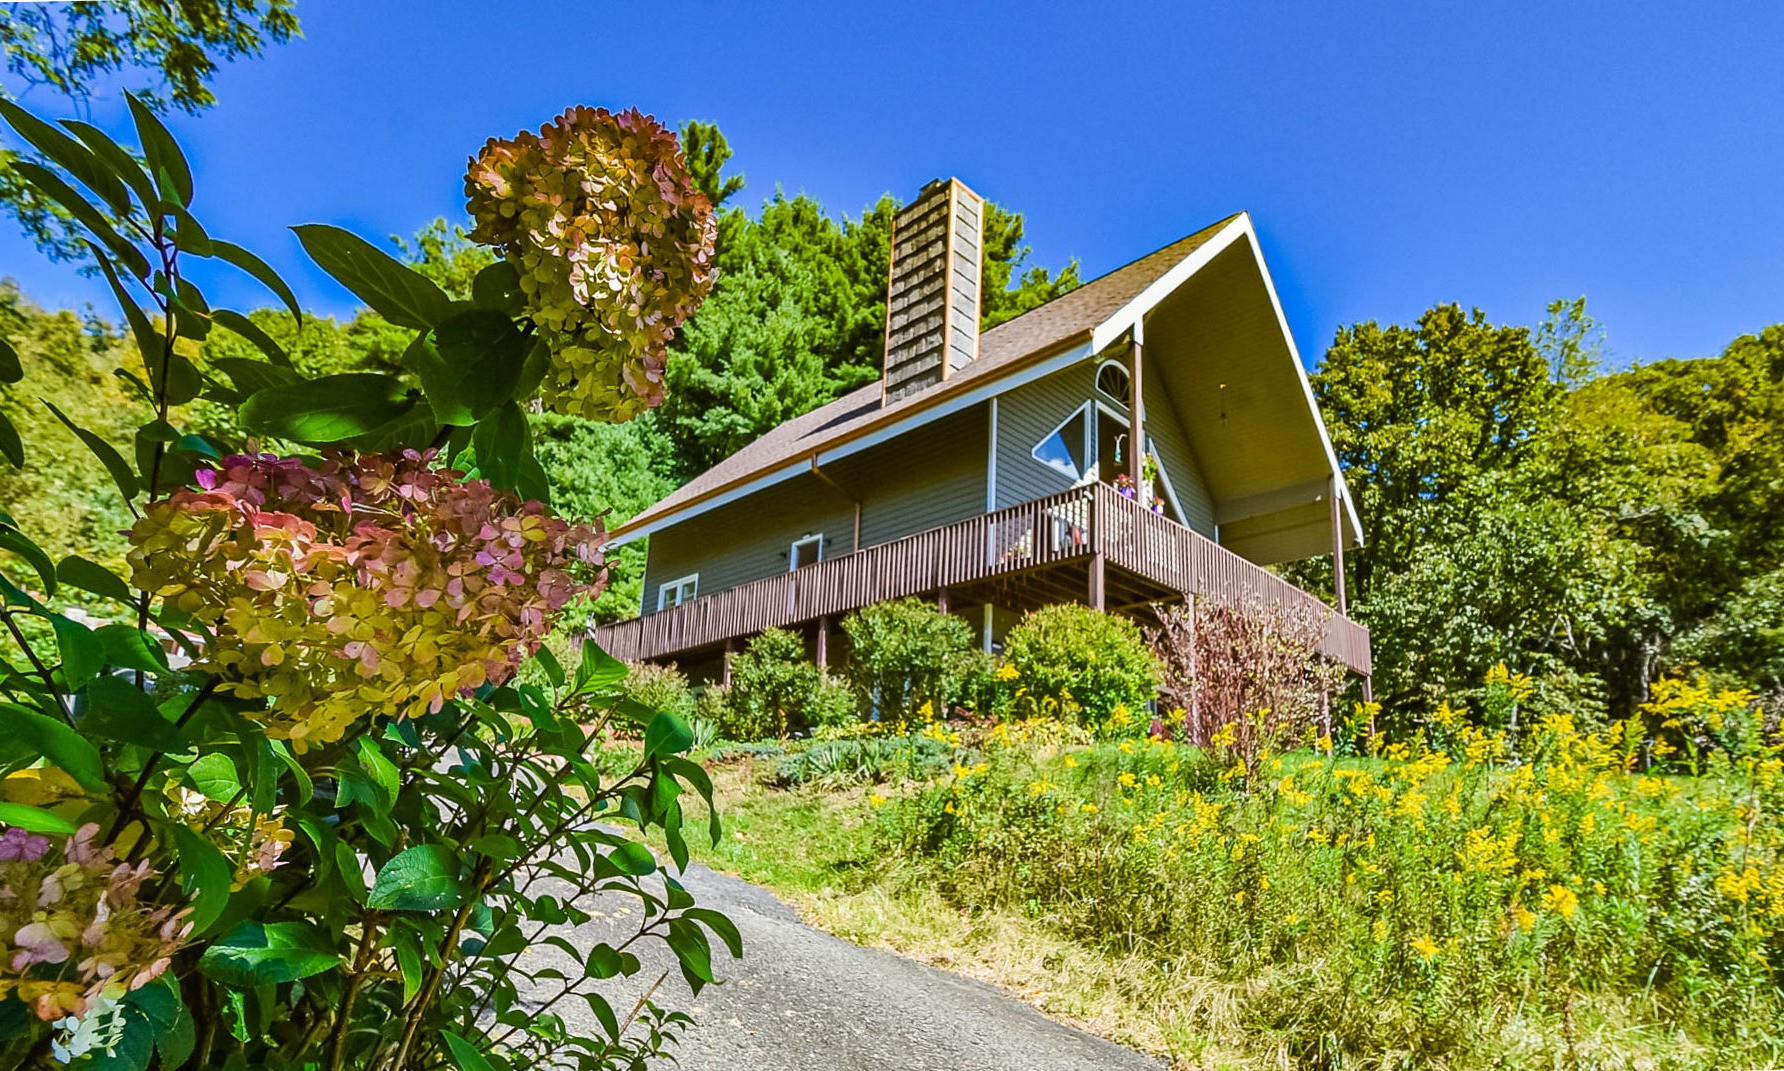 Nestled in a peaceful 7+ acre setting with a small pond, walking trails, abundant wildlife, and a diverse mixture of perennials and wildflowers, this well kept mountain chalet offers a tranquil retreat buffered by Nature.